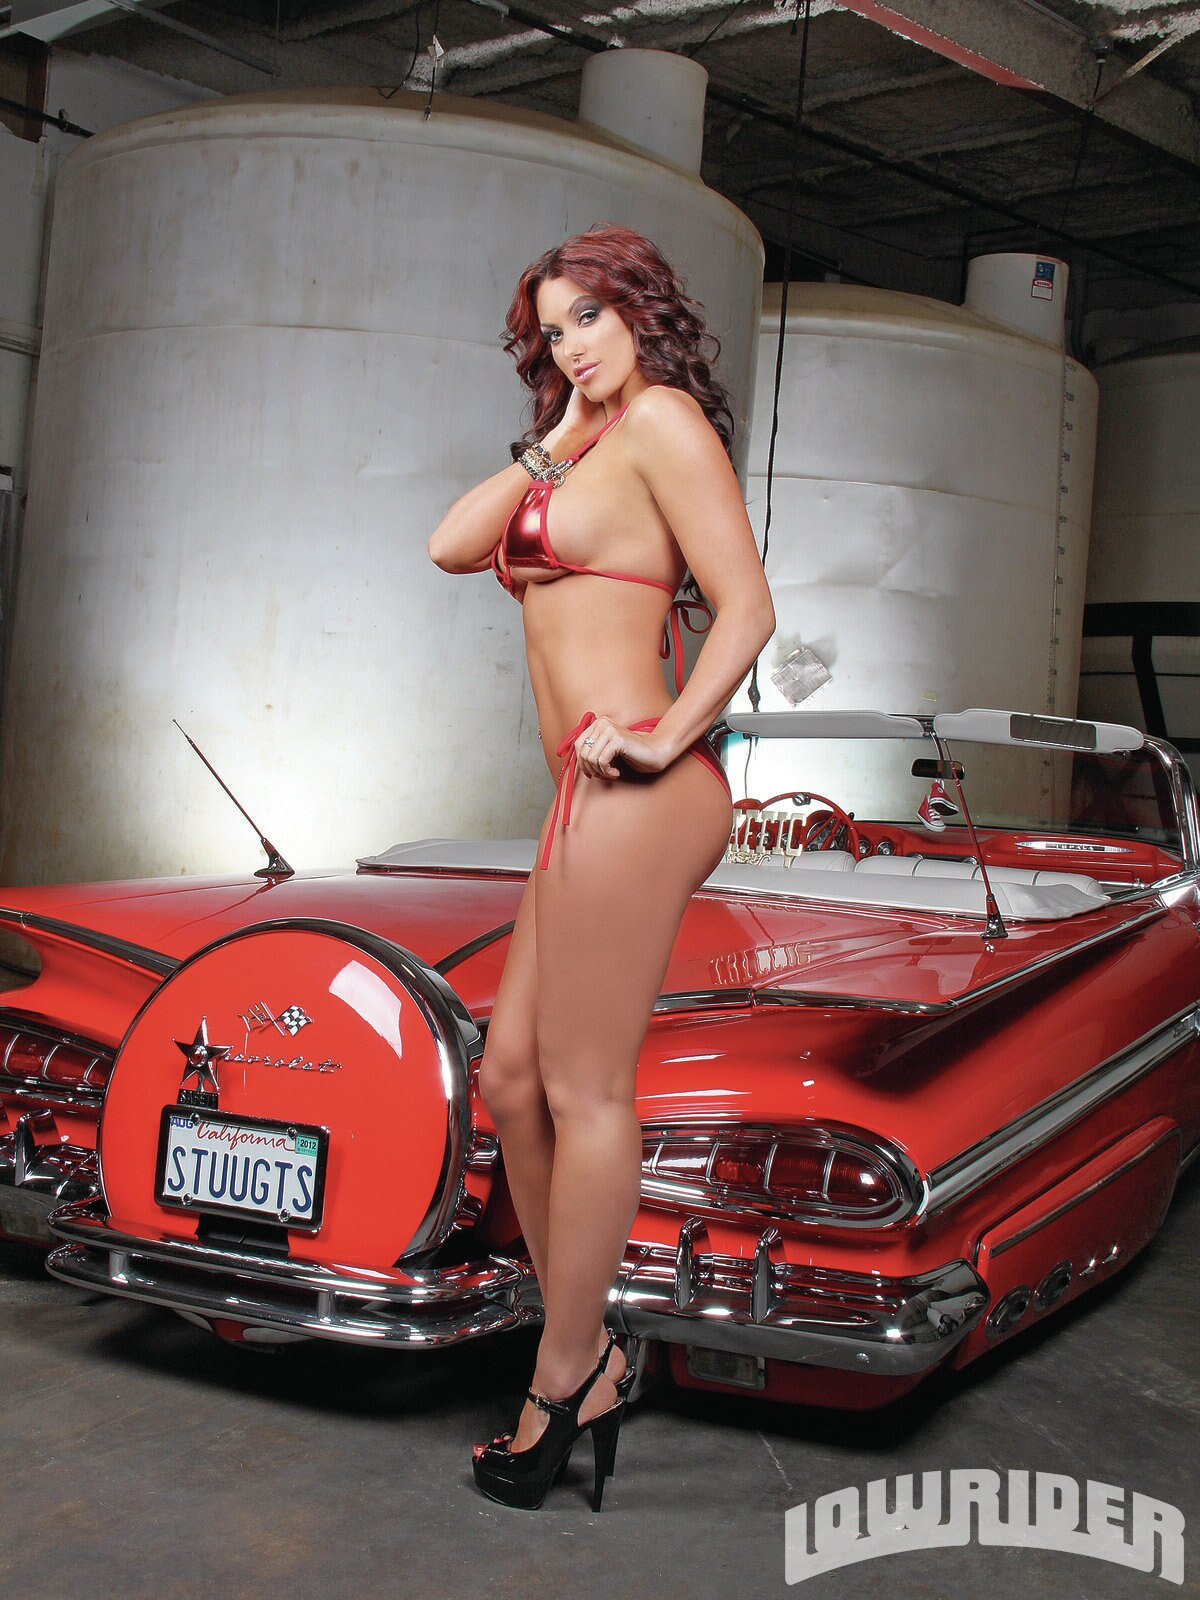 Fast Cars And Girls Wallpaper Angela Breitenbach Lowrider Girls Model Lowrider Girls